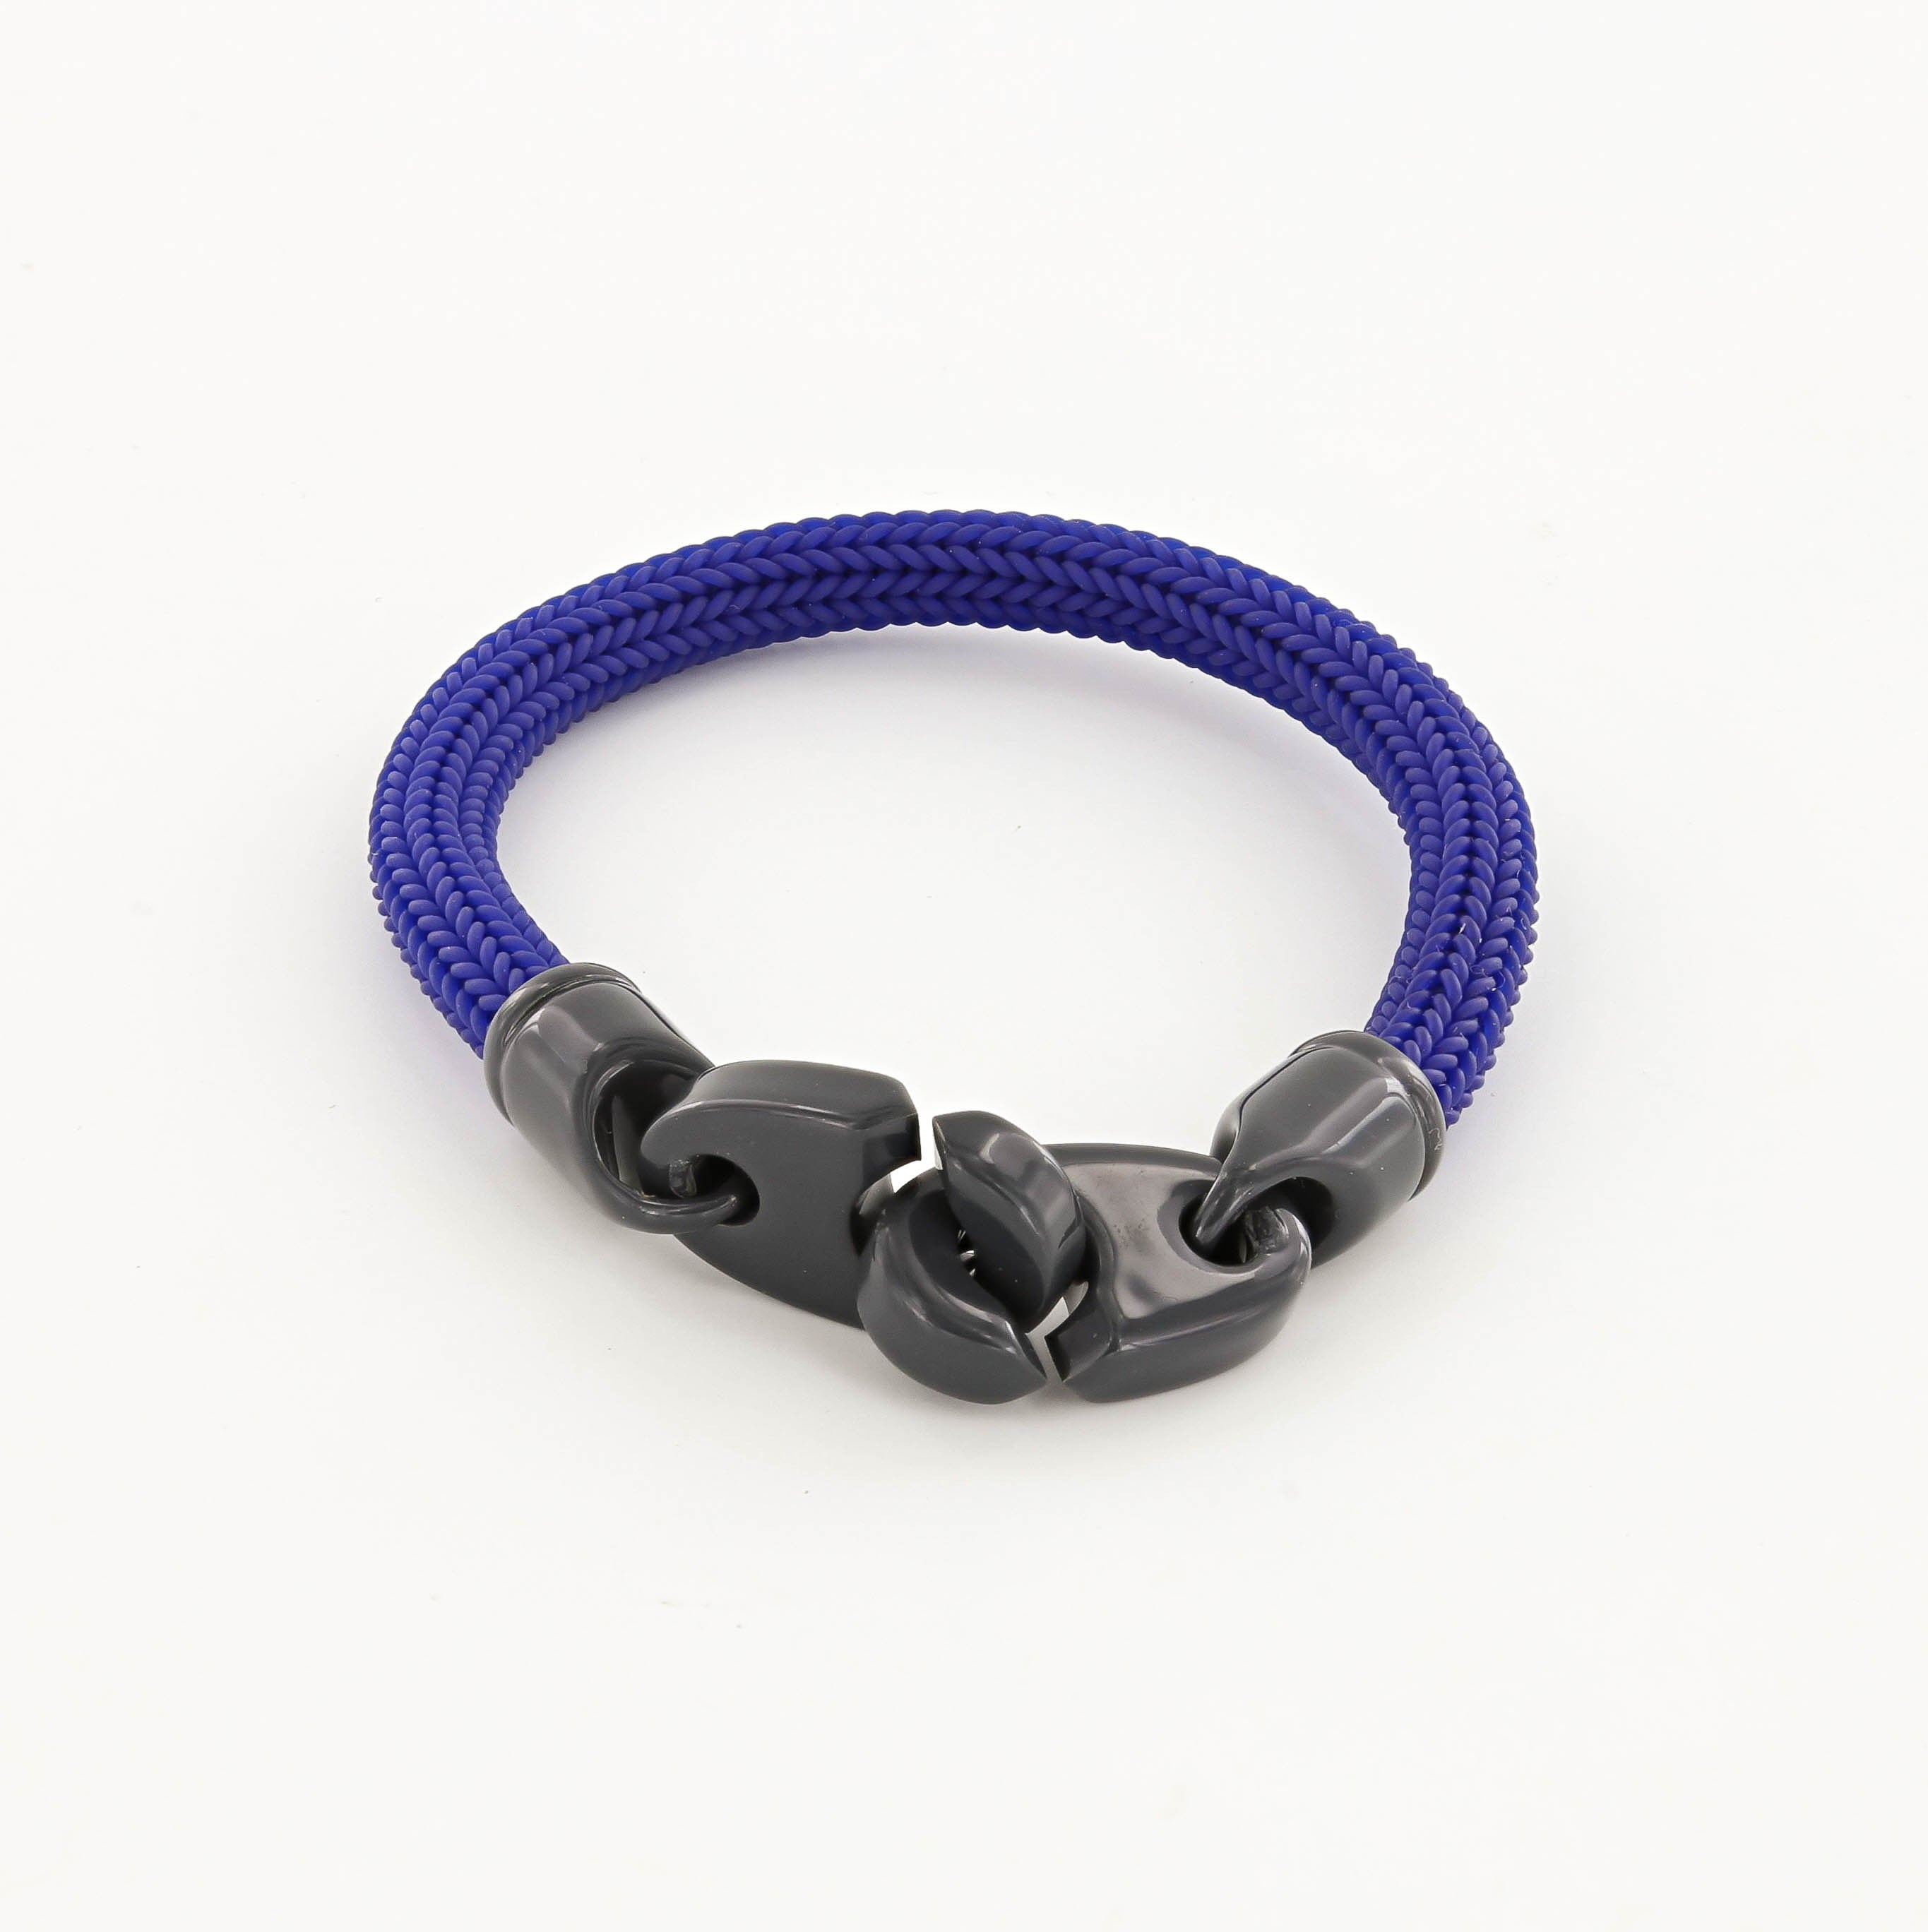 marc jacobs lyst striped normal bandz blue gallery in jewelry by rubber bracelet pink product